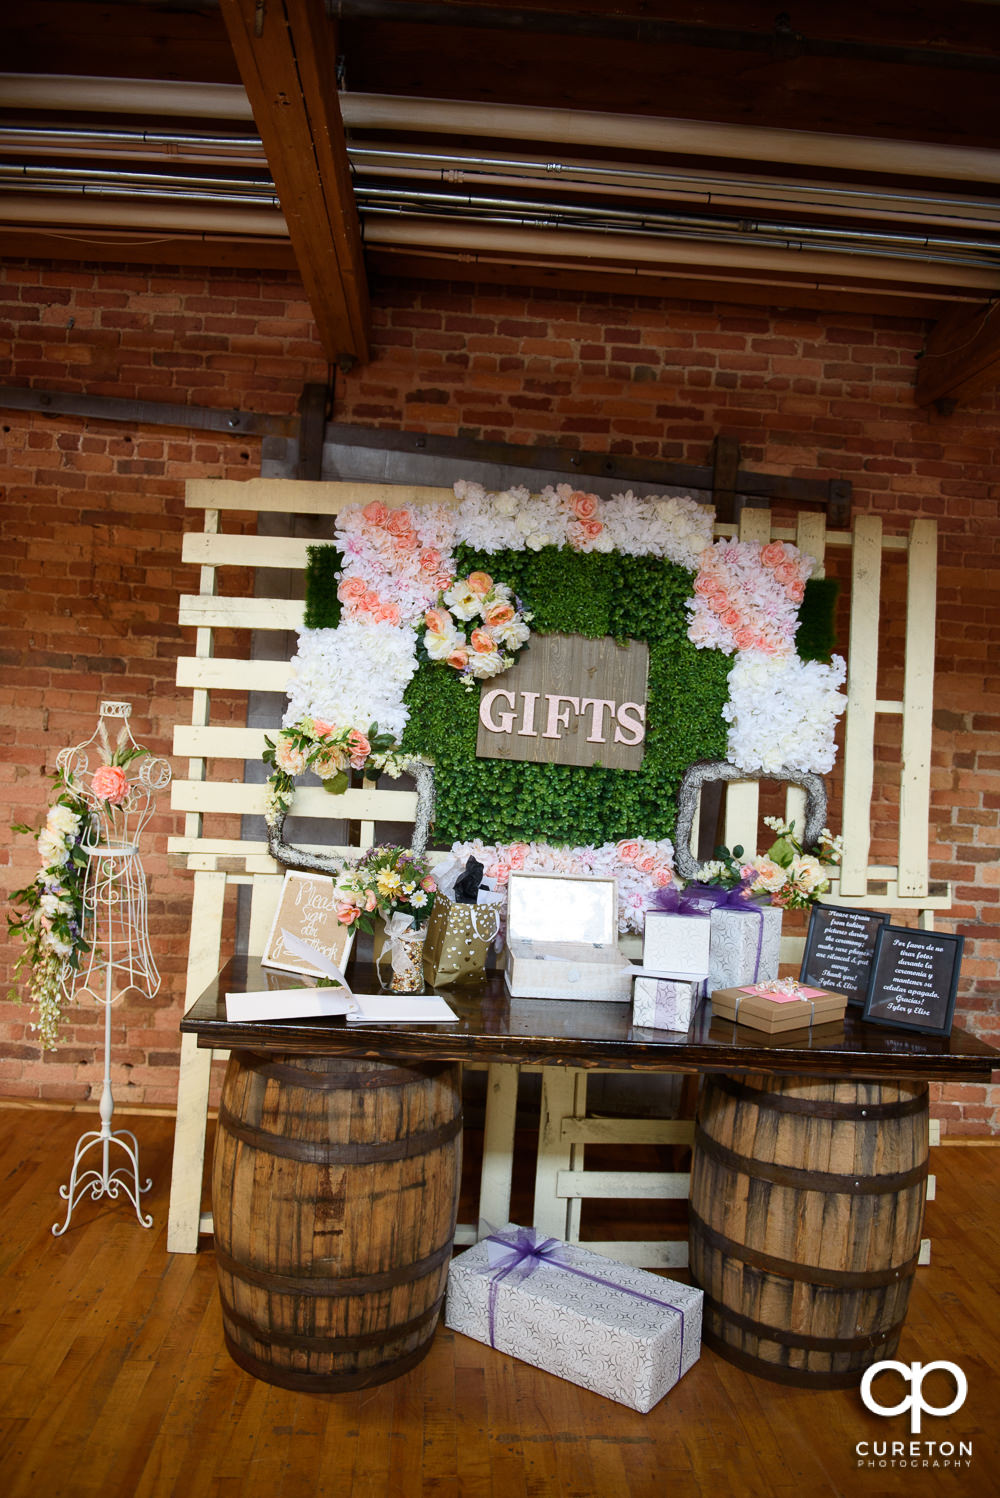 The gift table at the wedding.